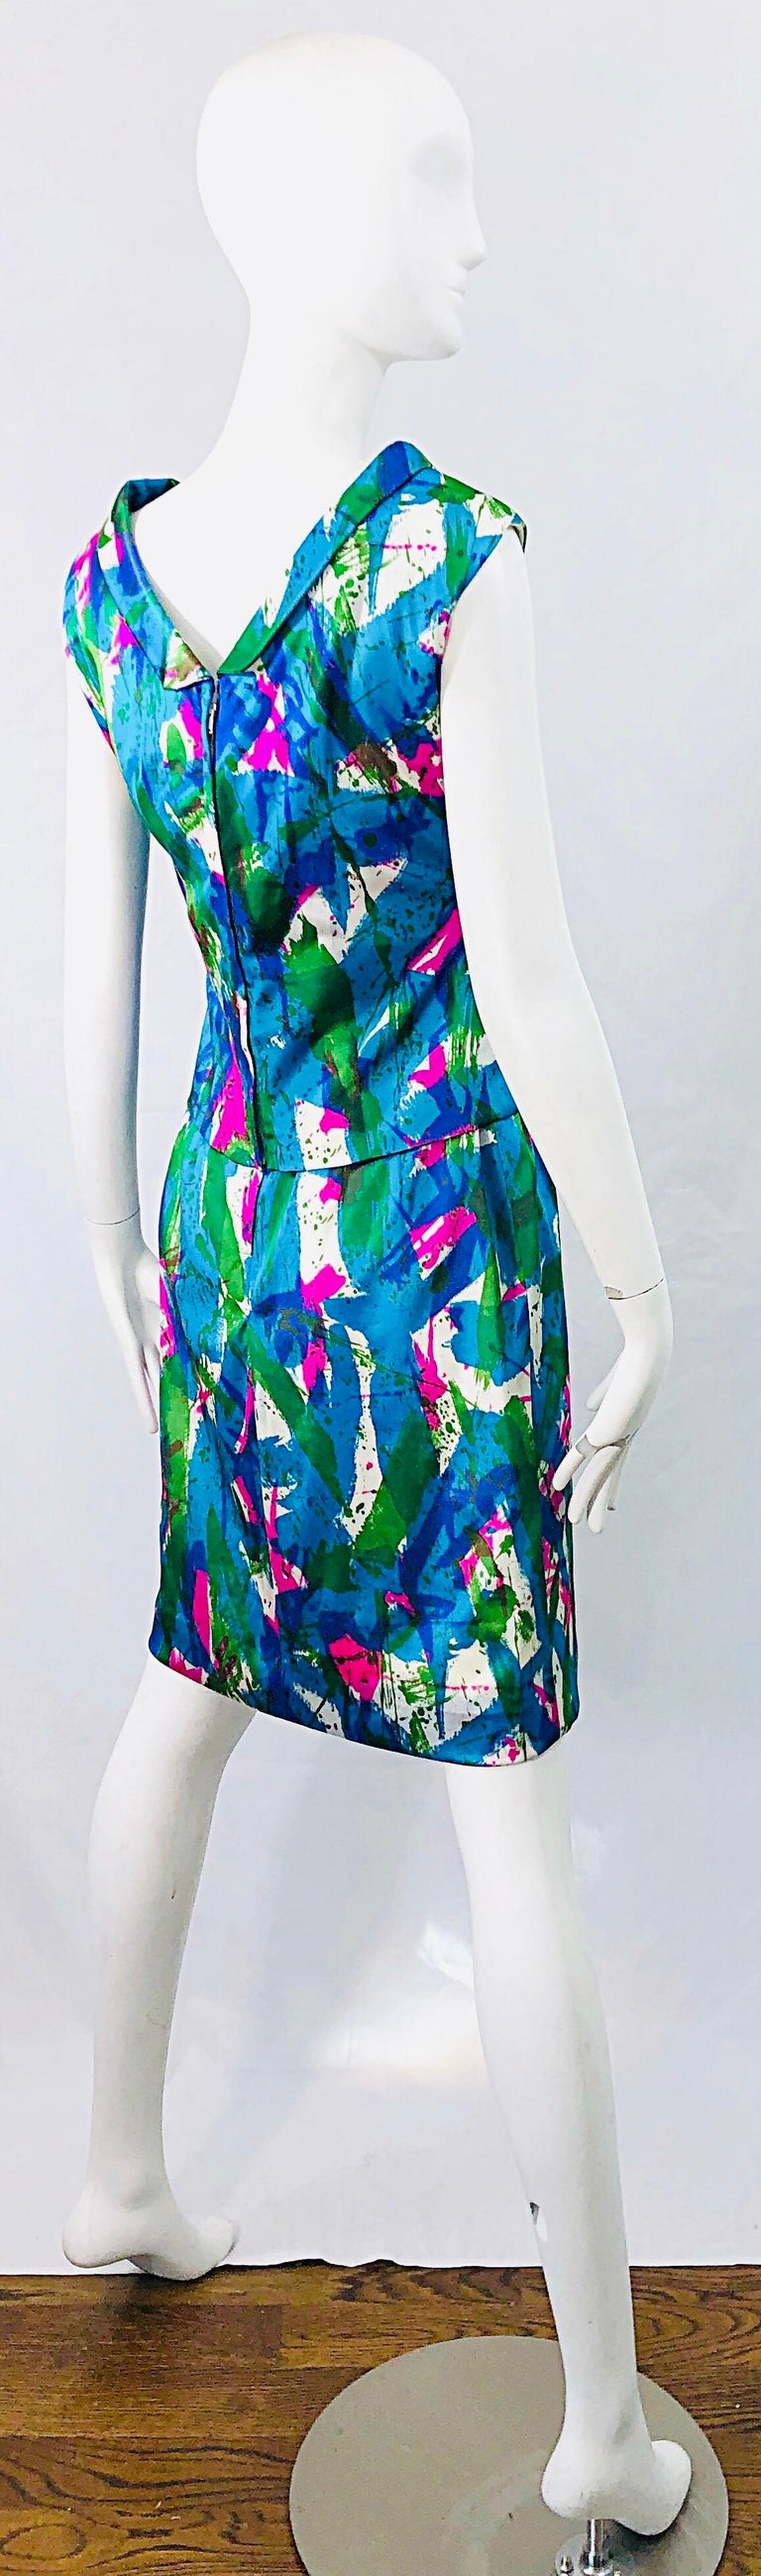 Chic 1960s Neon Abstract Print Two Piece Vintage 60s Sheath Dress + Top Blouse  For Sale 2